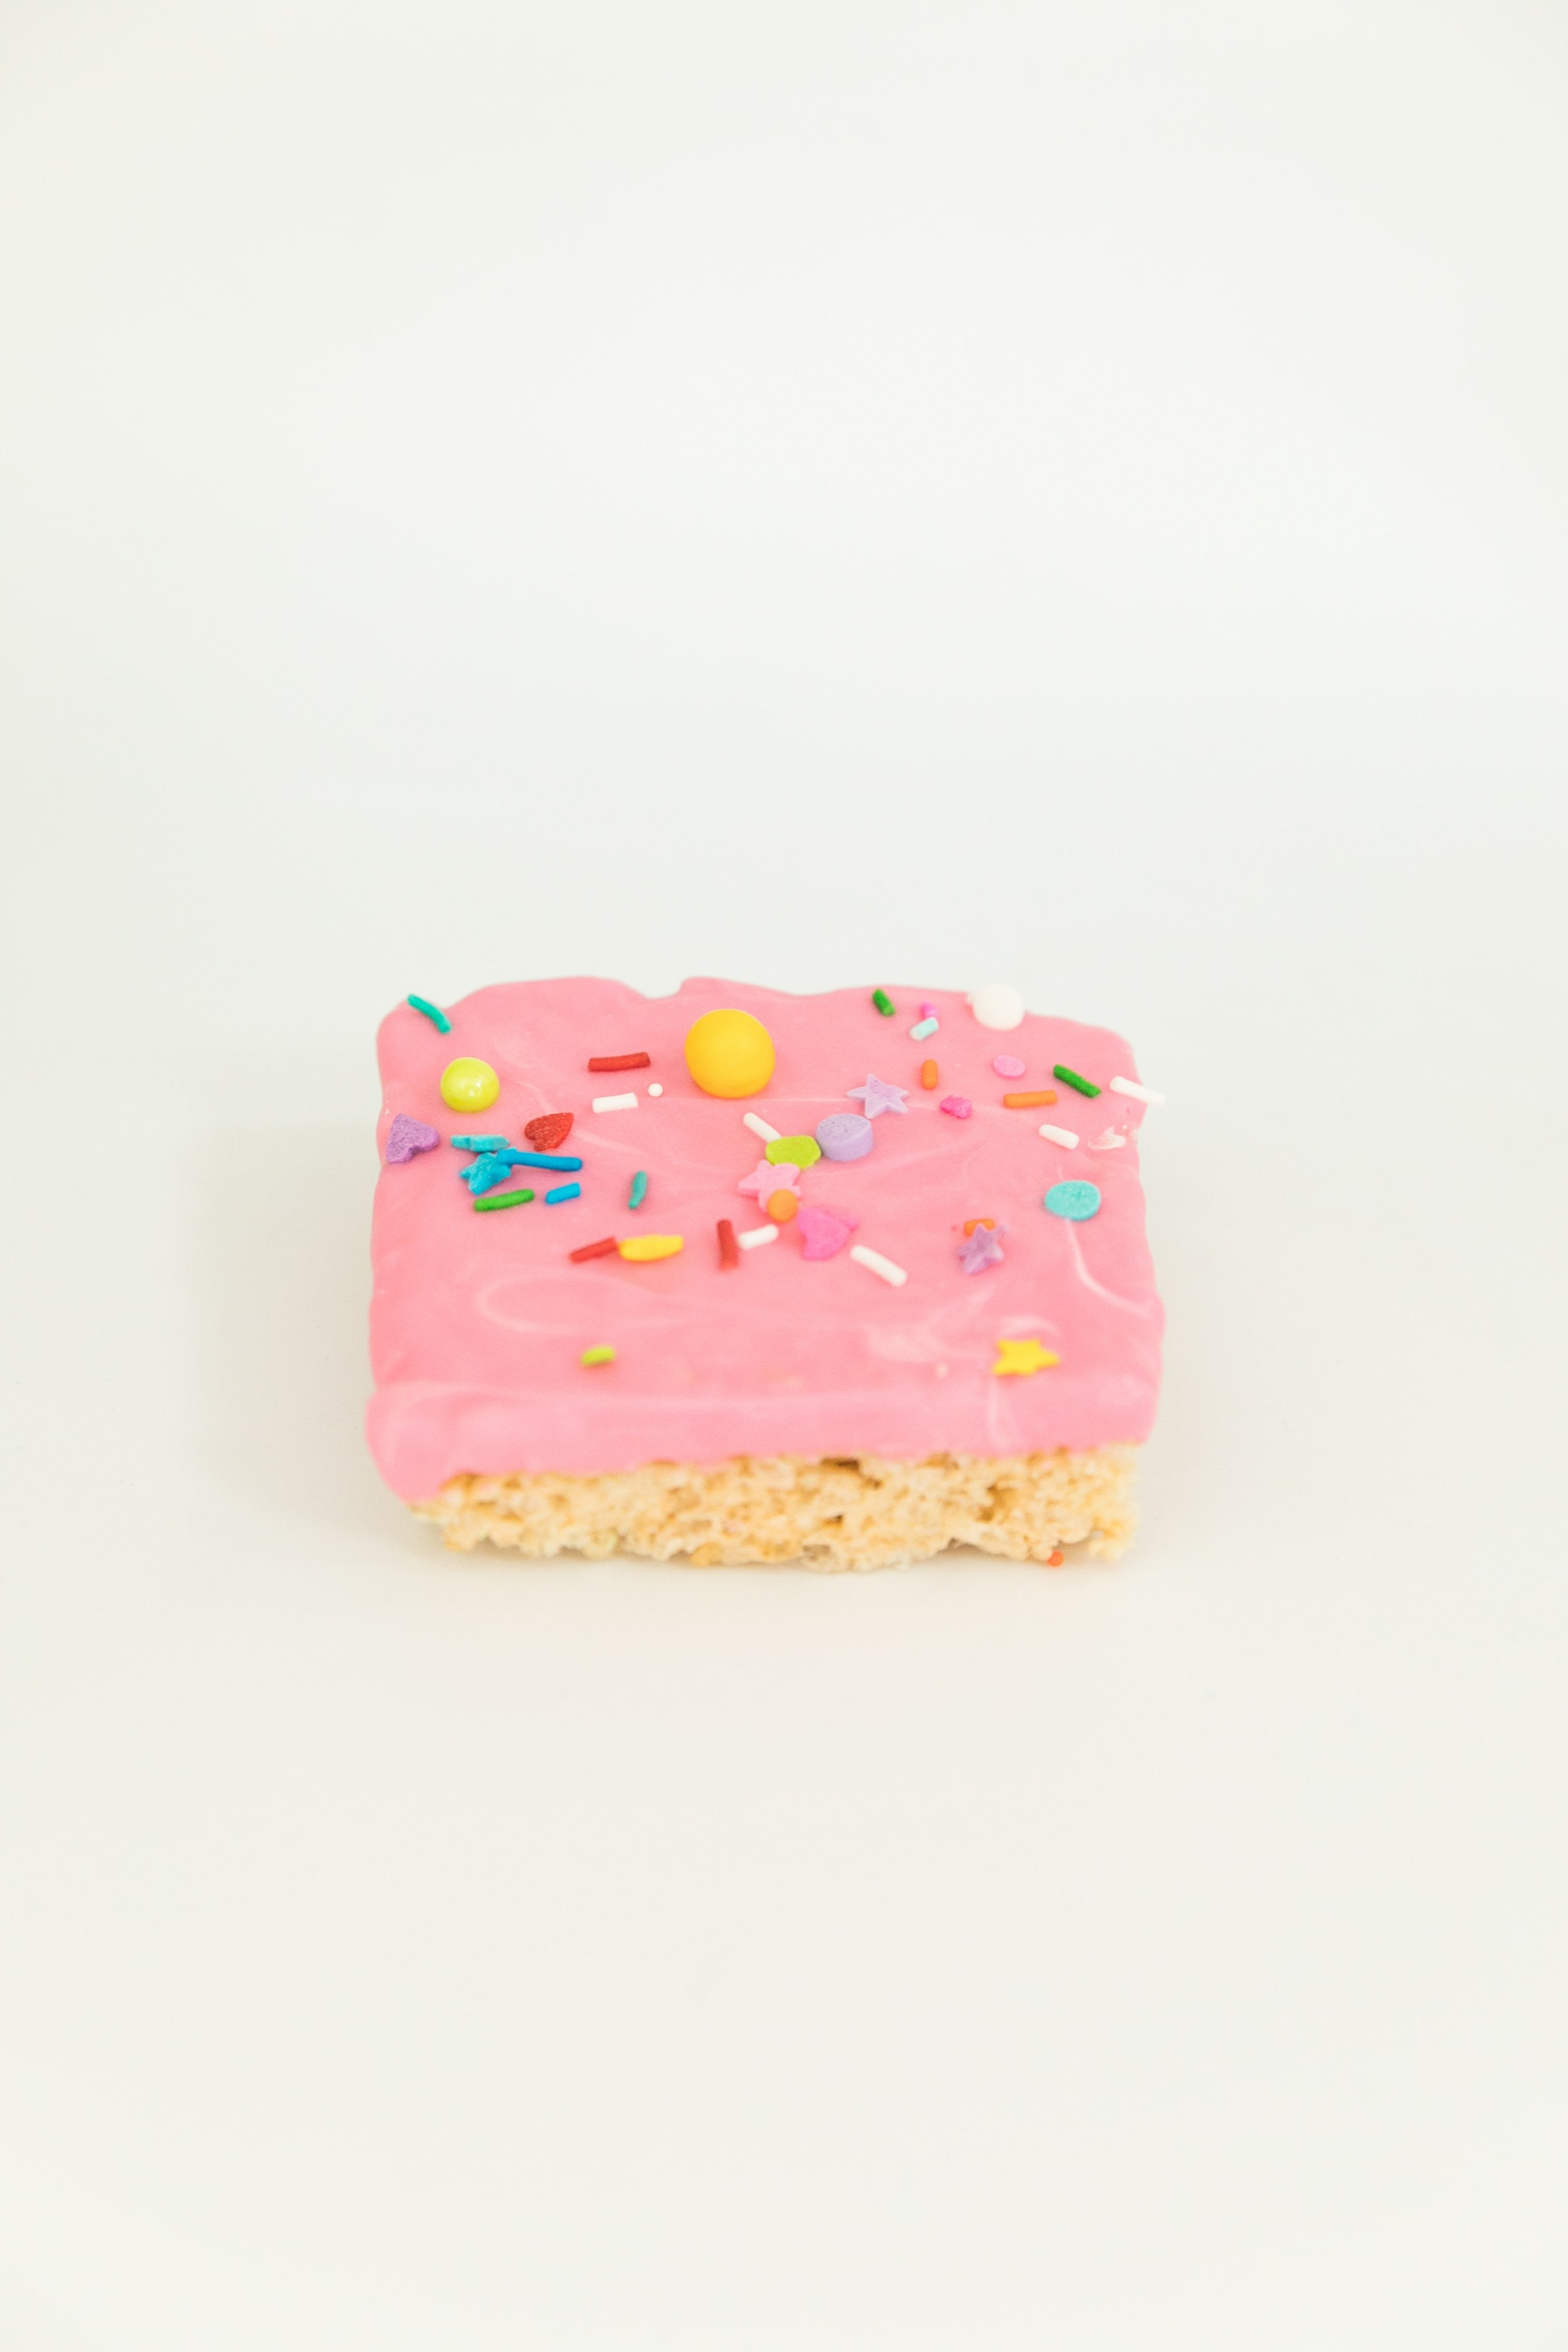 rice krispies treat dipped in pink white chocolate with sweetapolita sprinkles